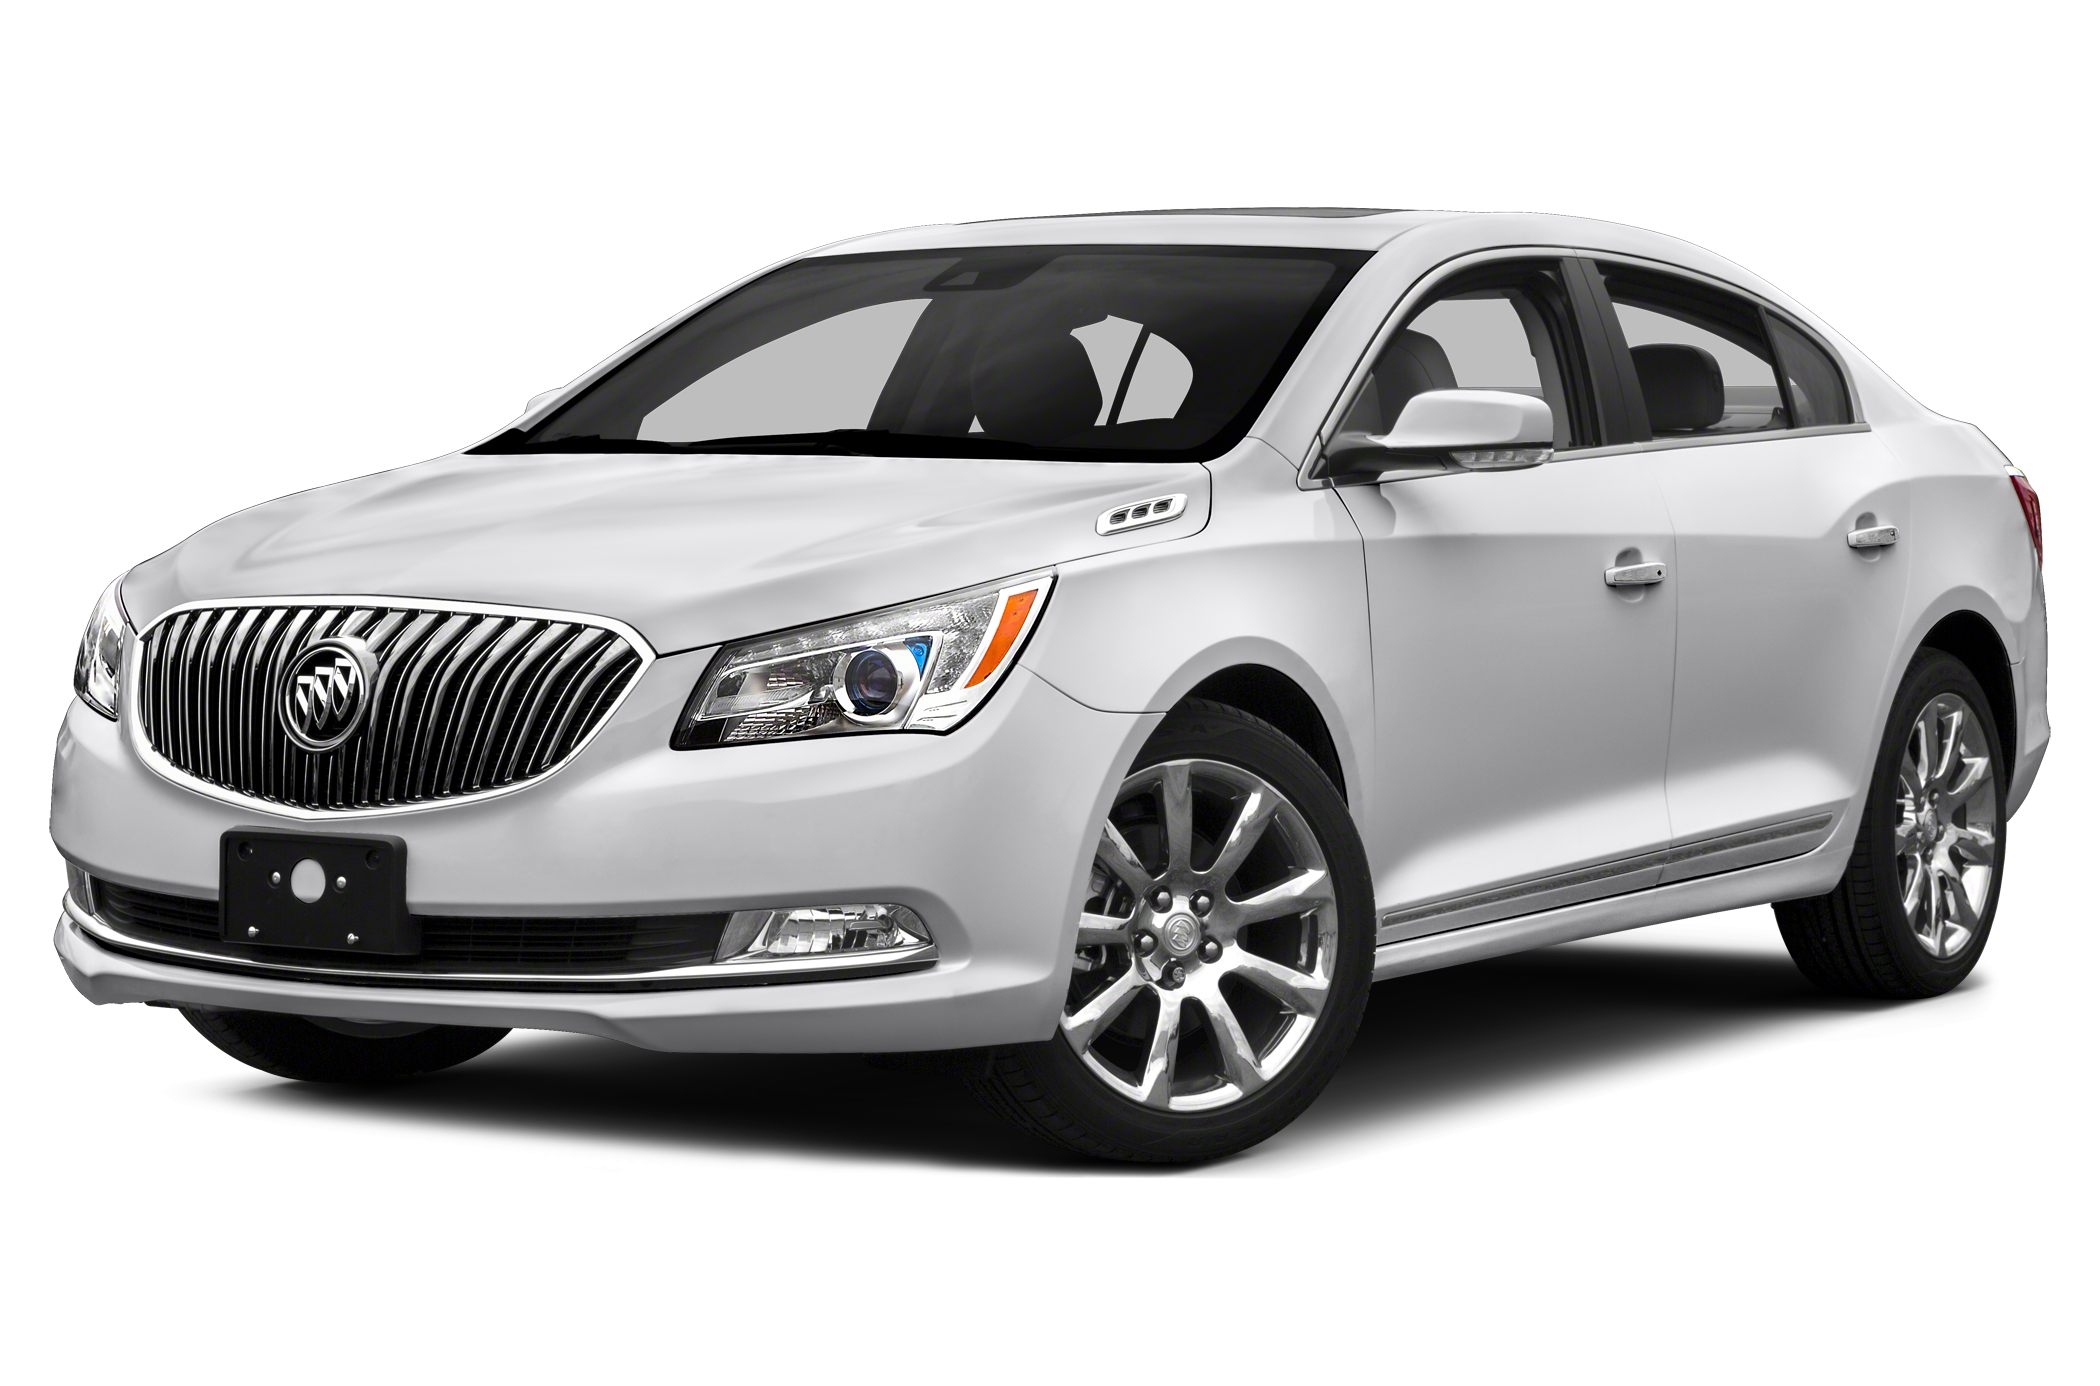 2014 Buick LaCrosse Base Sedan for sale in Fleetwood for $34,200 with 0 miles